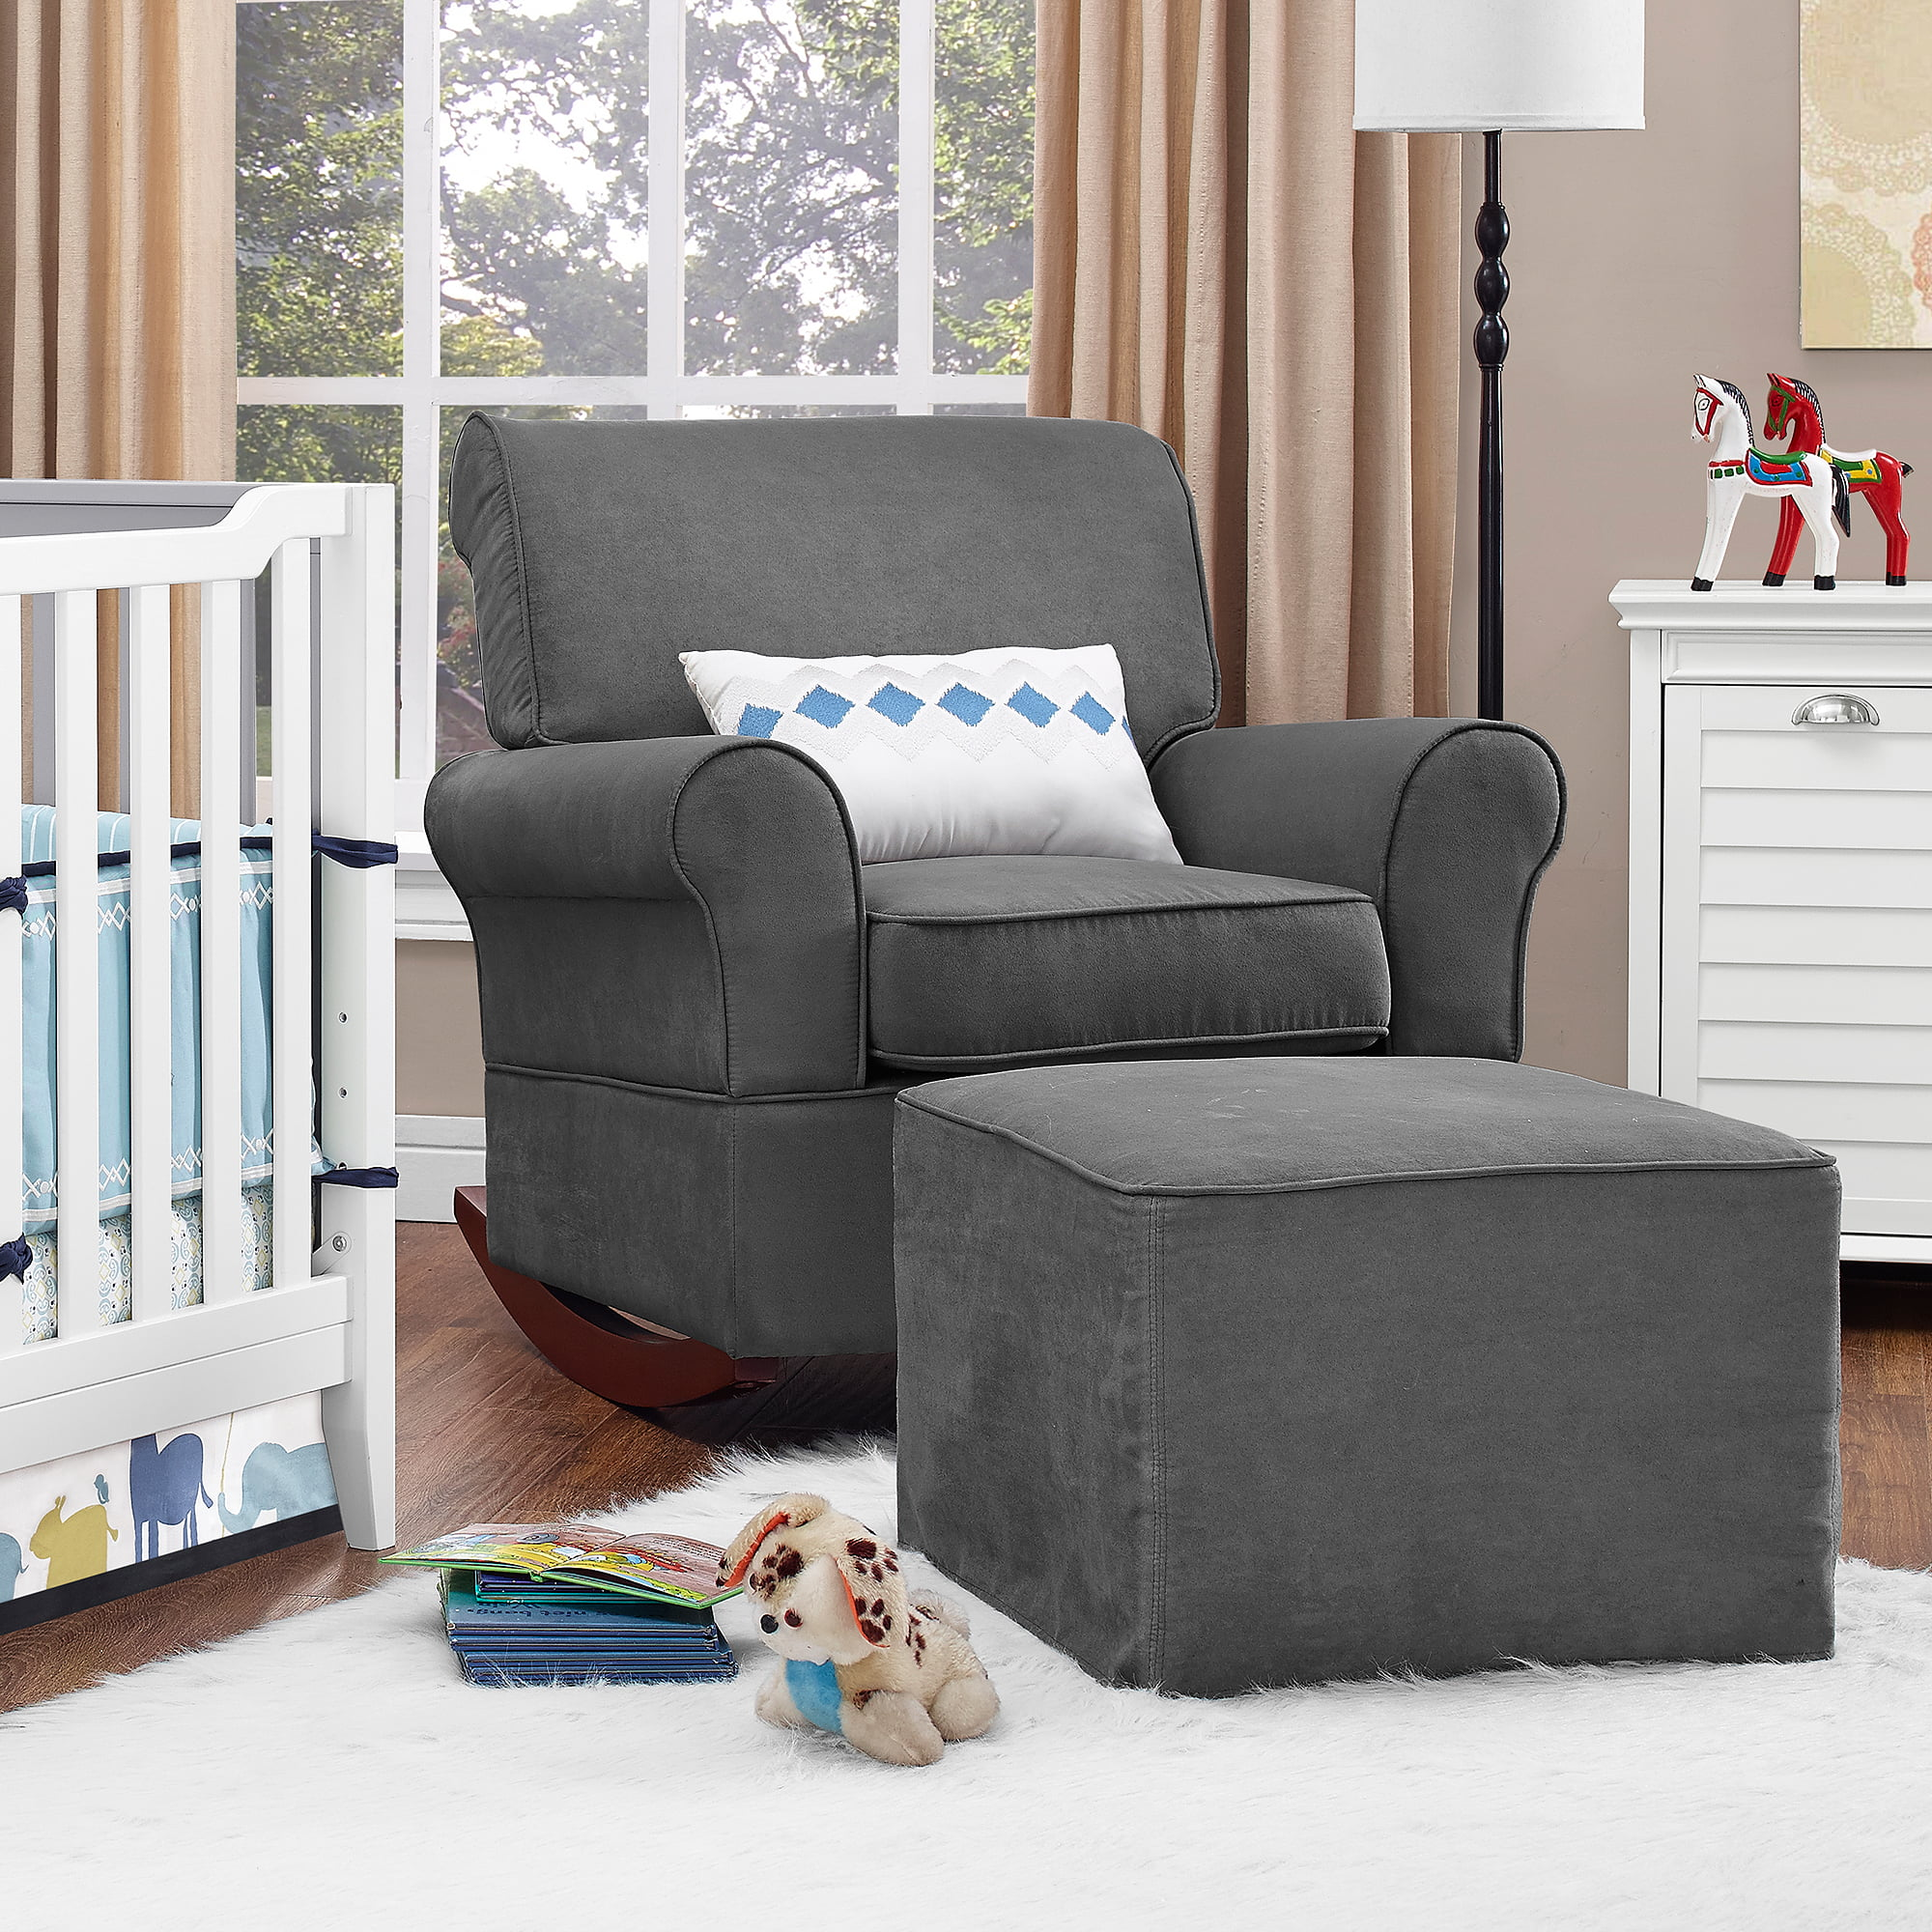 New Baby Nursery Rocking Chair Upholstered Grey Furniture